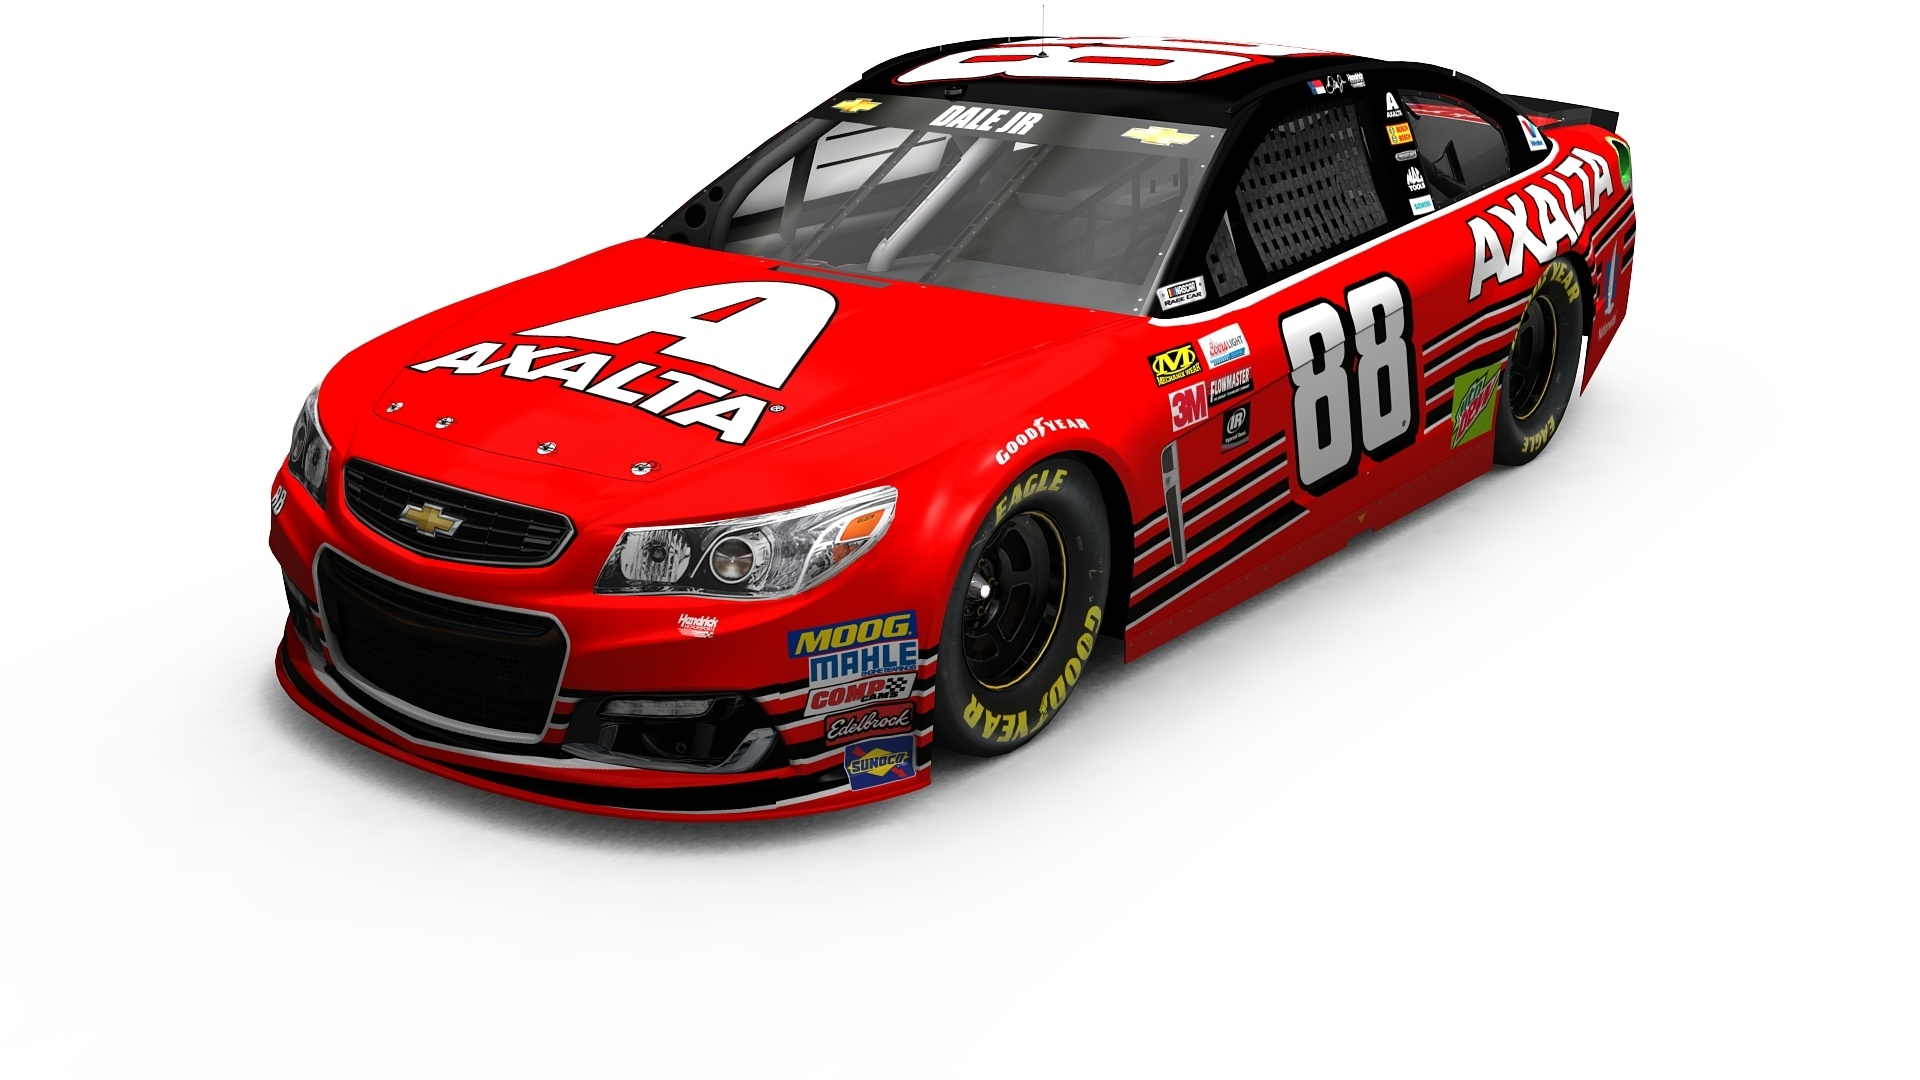 Axalta Debuts Cromax EZ on Dale Earnhardt Jr.'s Last NASCAR Cup Series Car at the 2017 SEMA Show